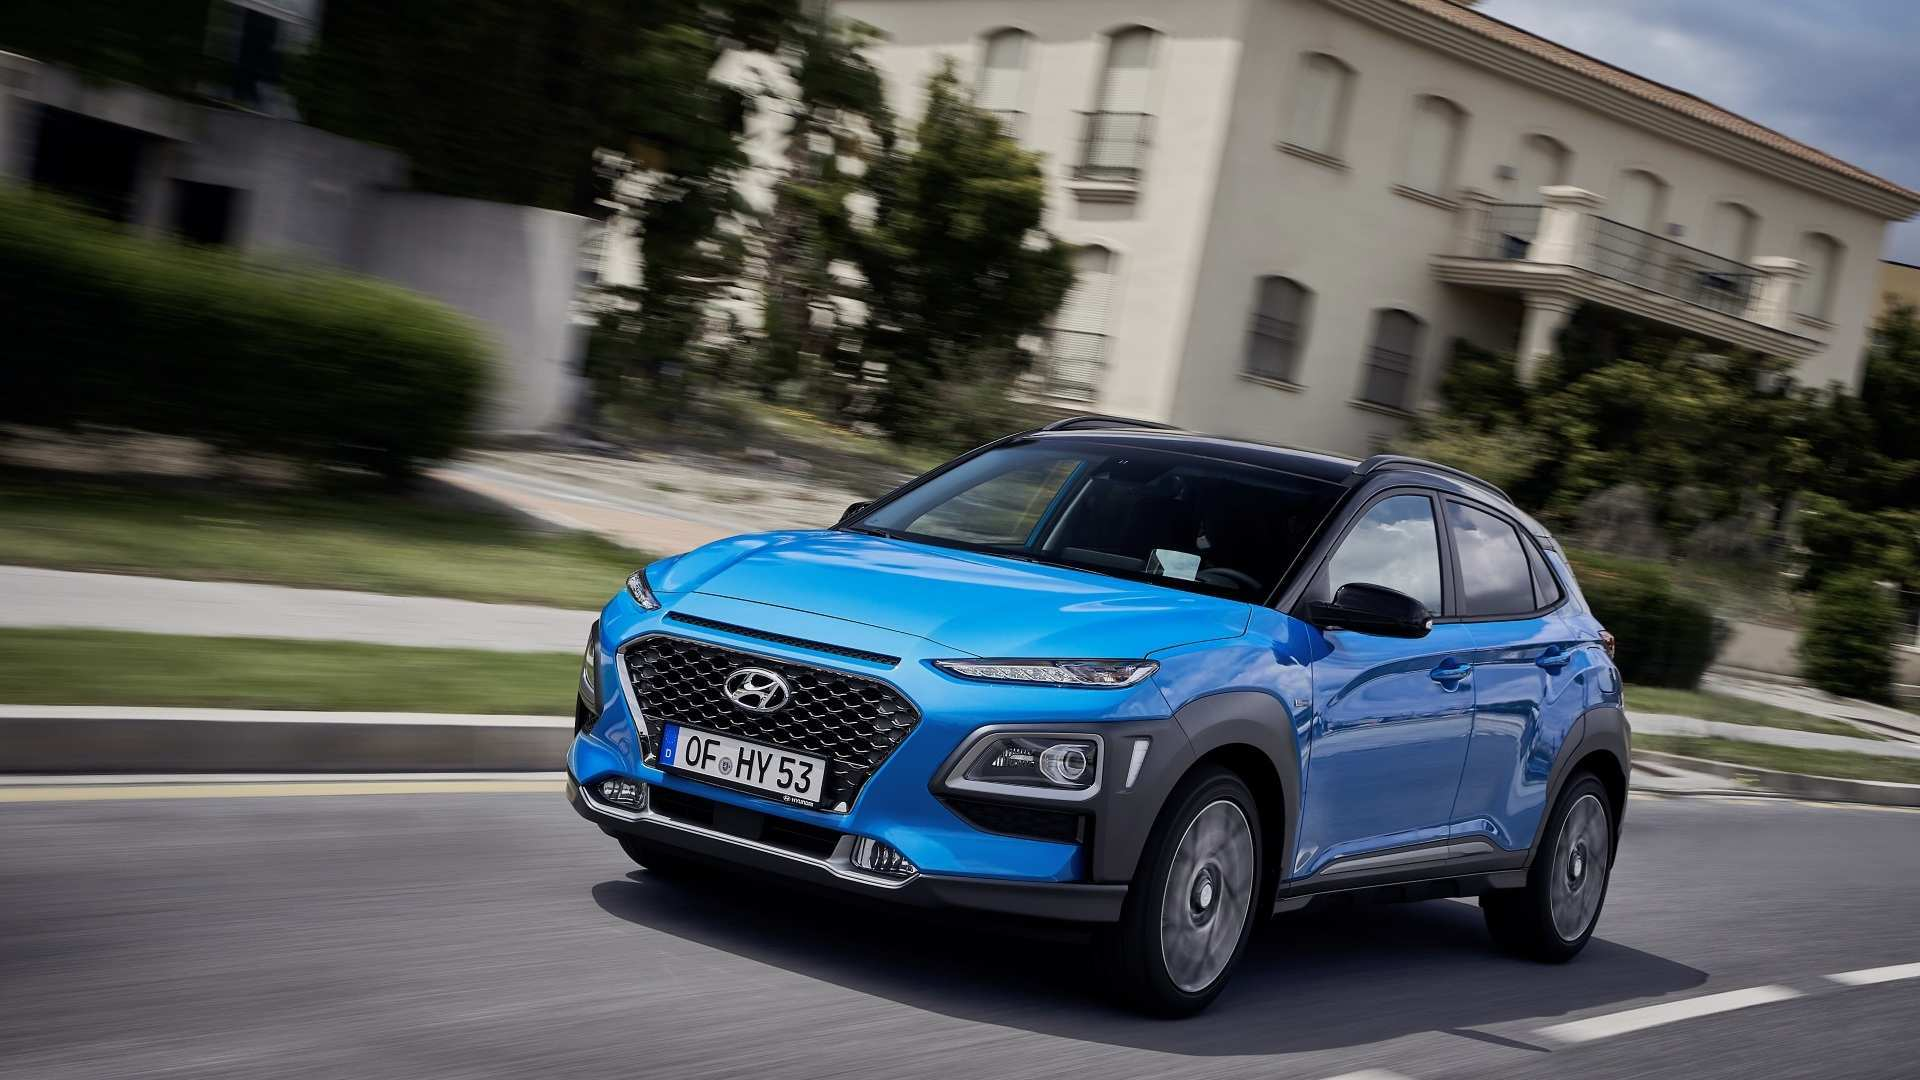 42 All New Hyundai Hybrid Suv 2020 Price Design And Review